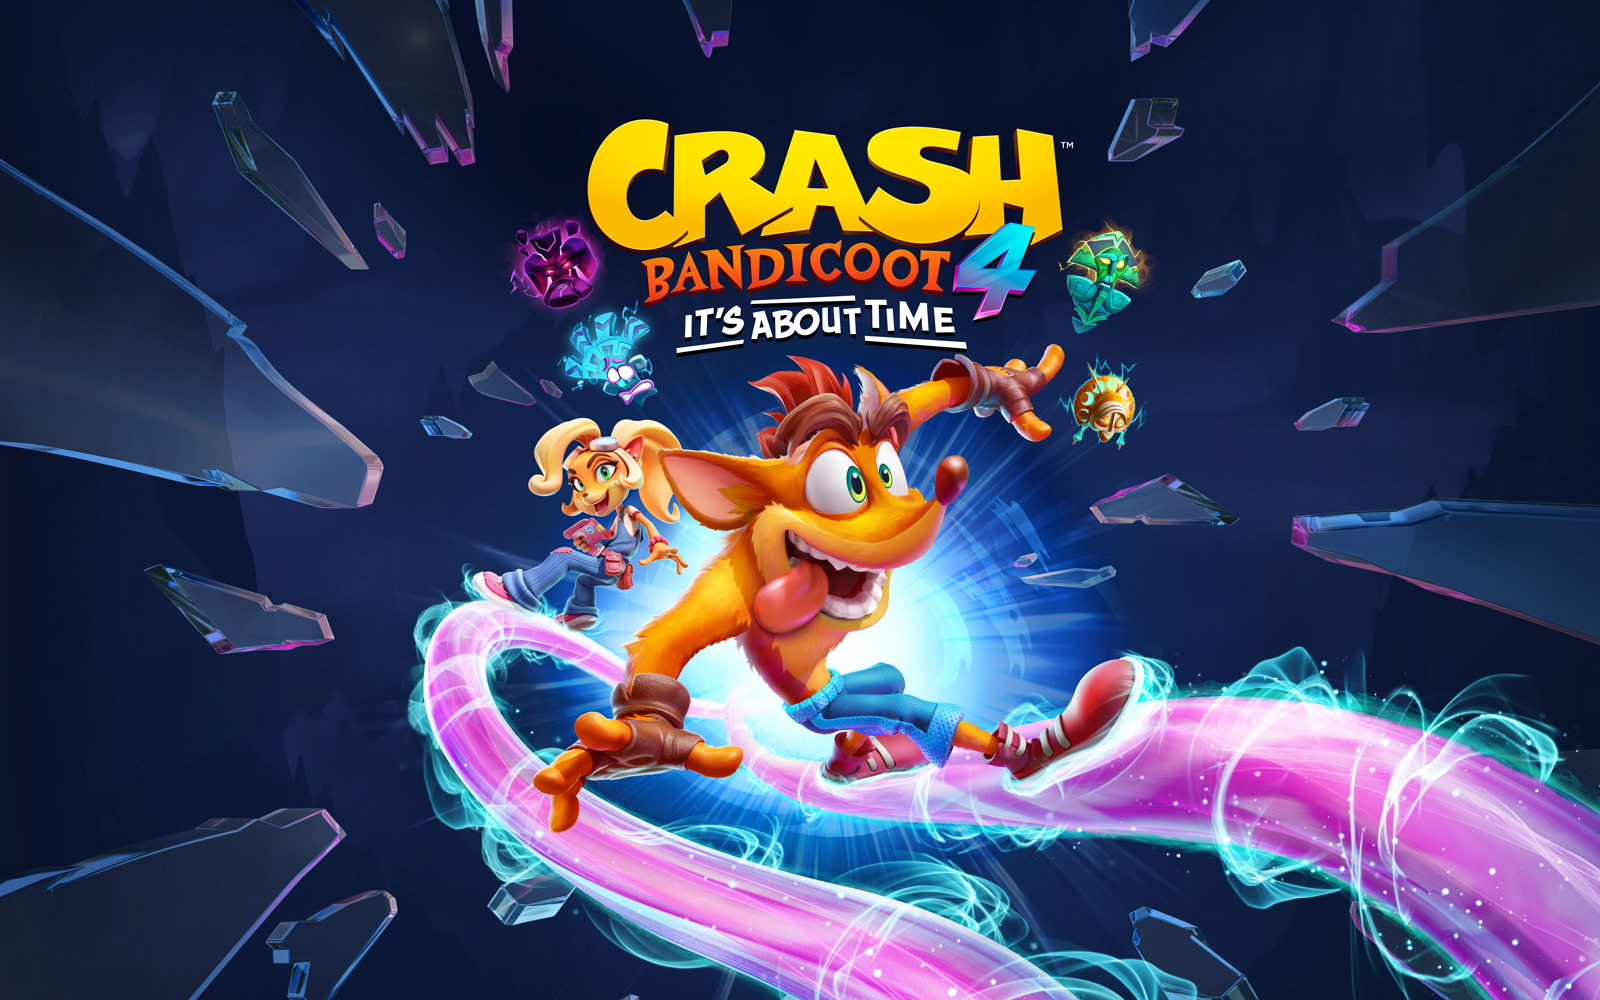 Crash Bandicoot 4 Gets Debut Trailer & Details